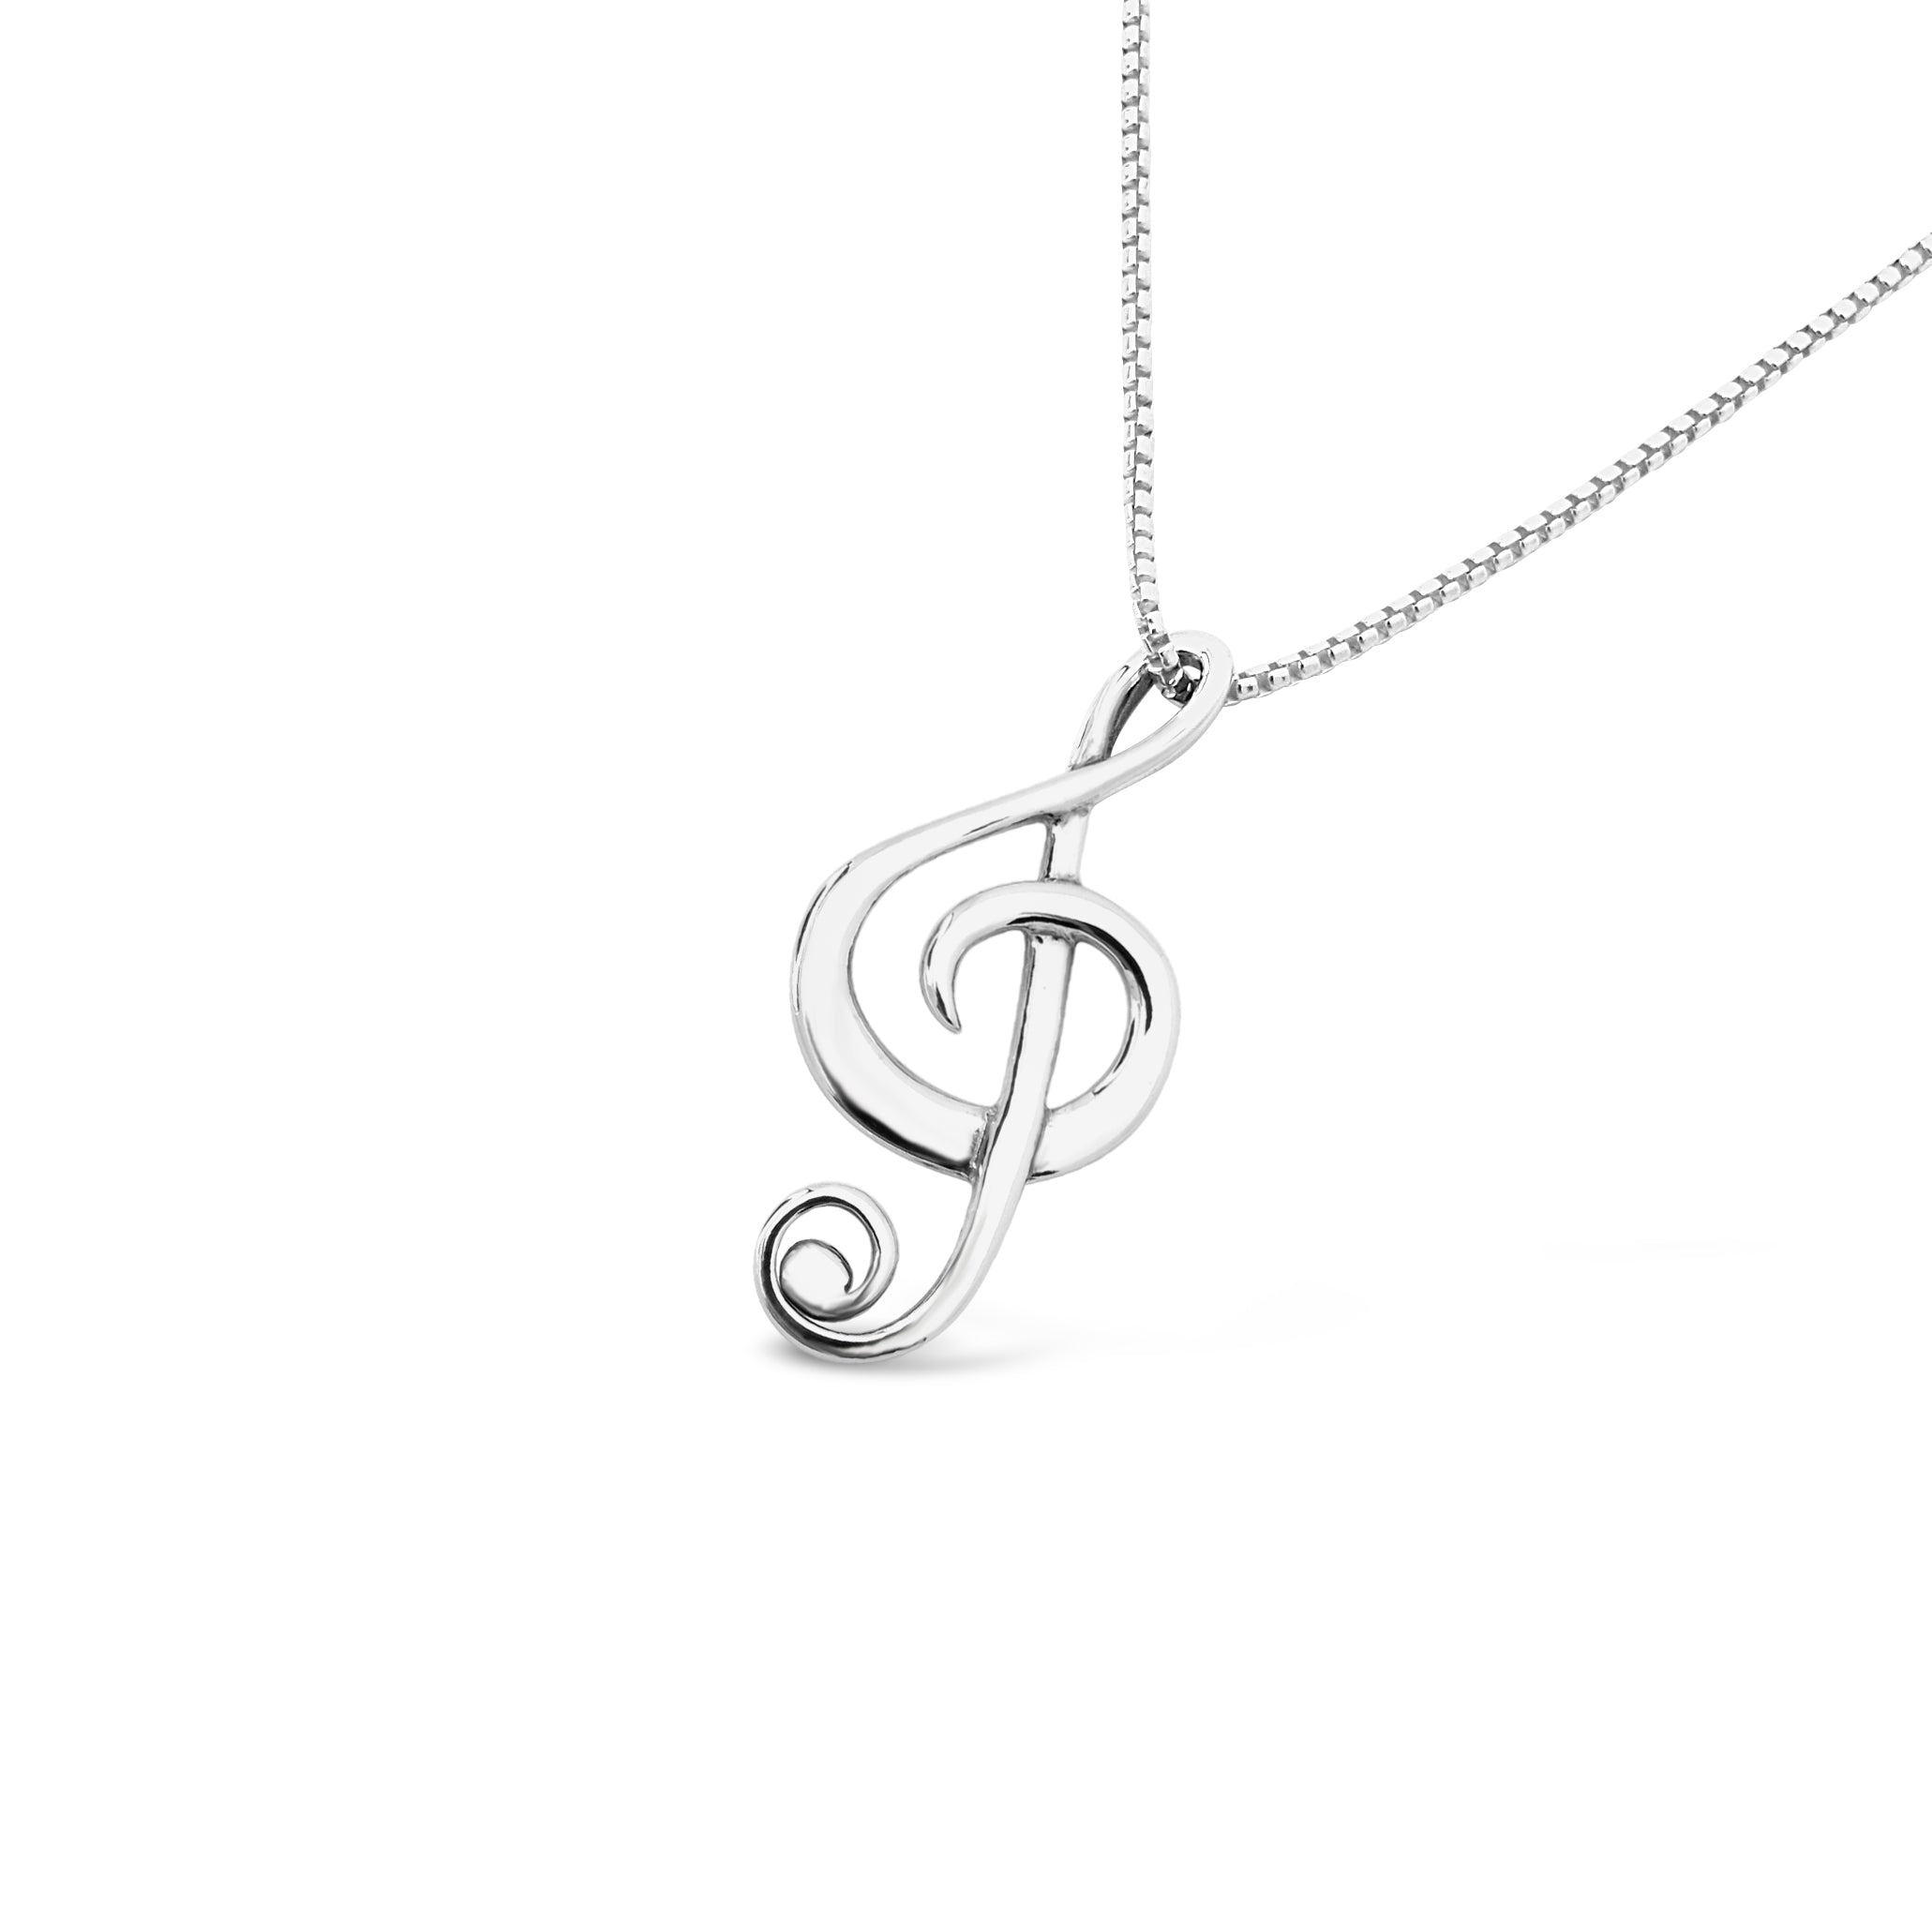 Treble Clef - Medium